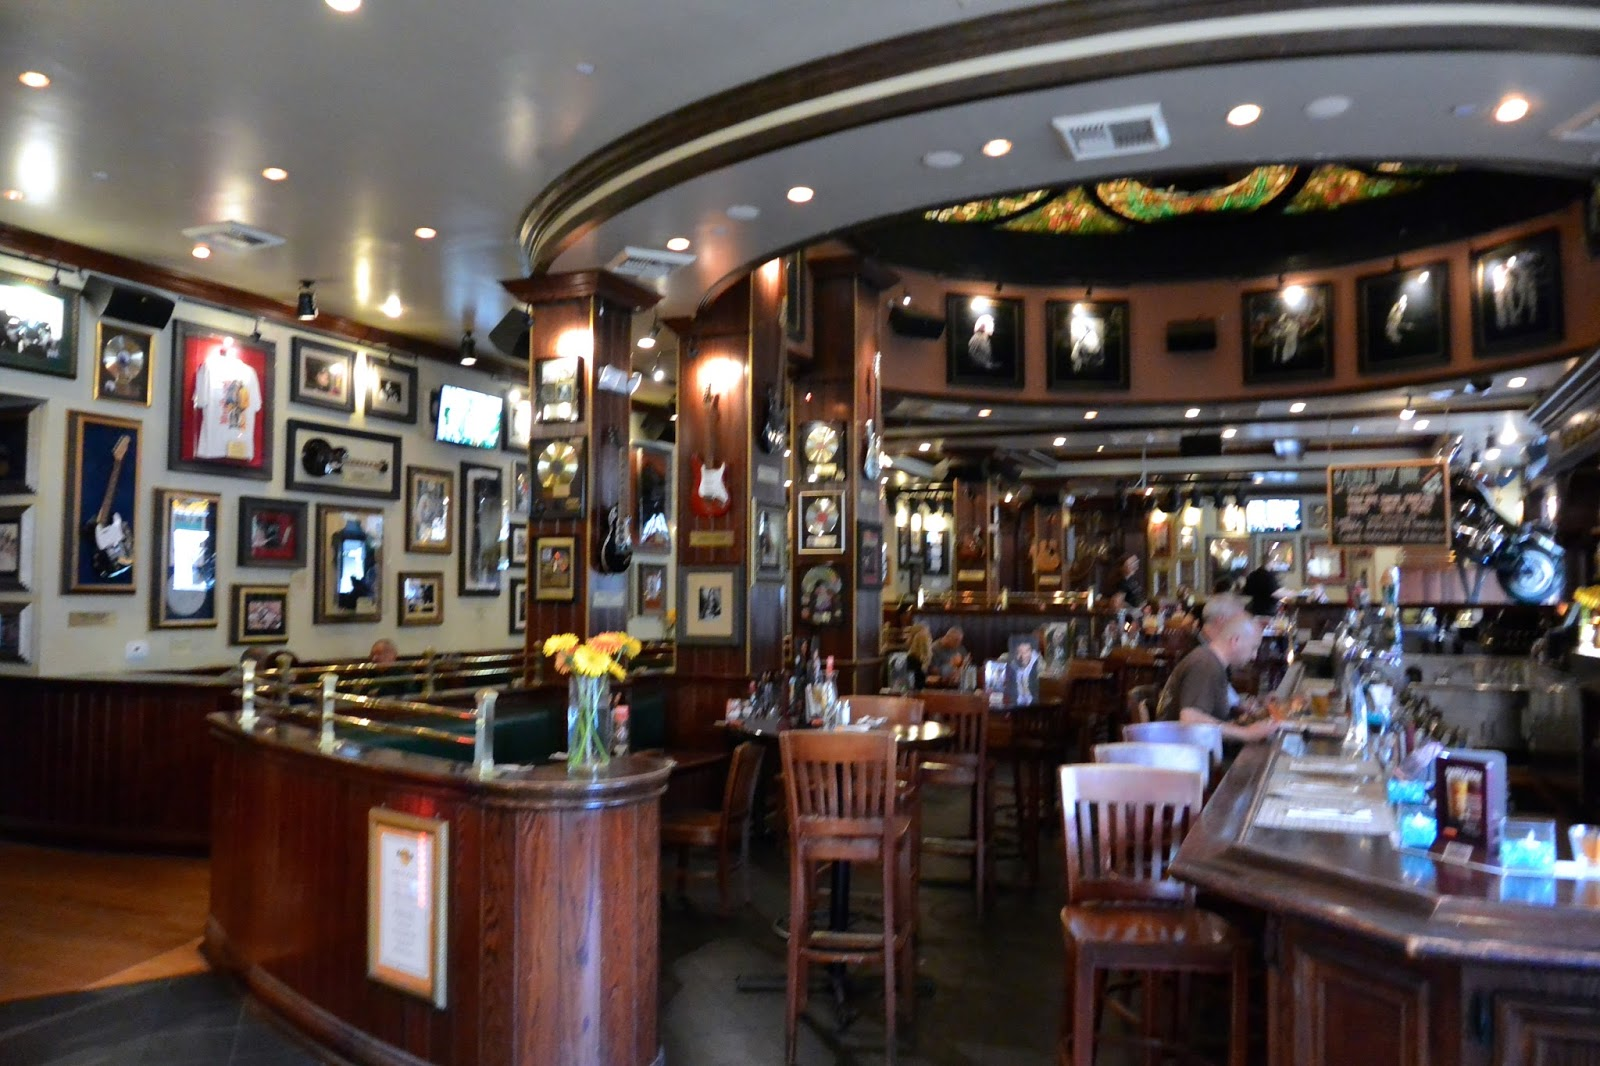 case study forecasting at hard rock cafe solution For restaurants like hard rock café, taking into consideration the season, holidays, time of day, day of week, time of the month in relation to paydays, and meals served is necessary for effective forecasting of sales (2.